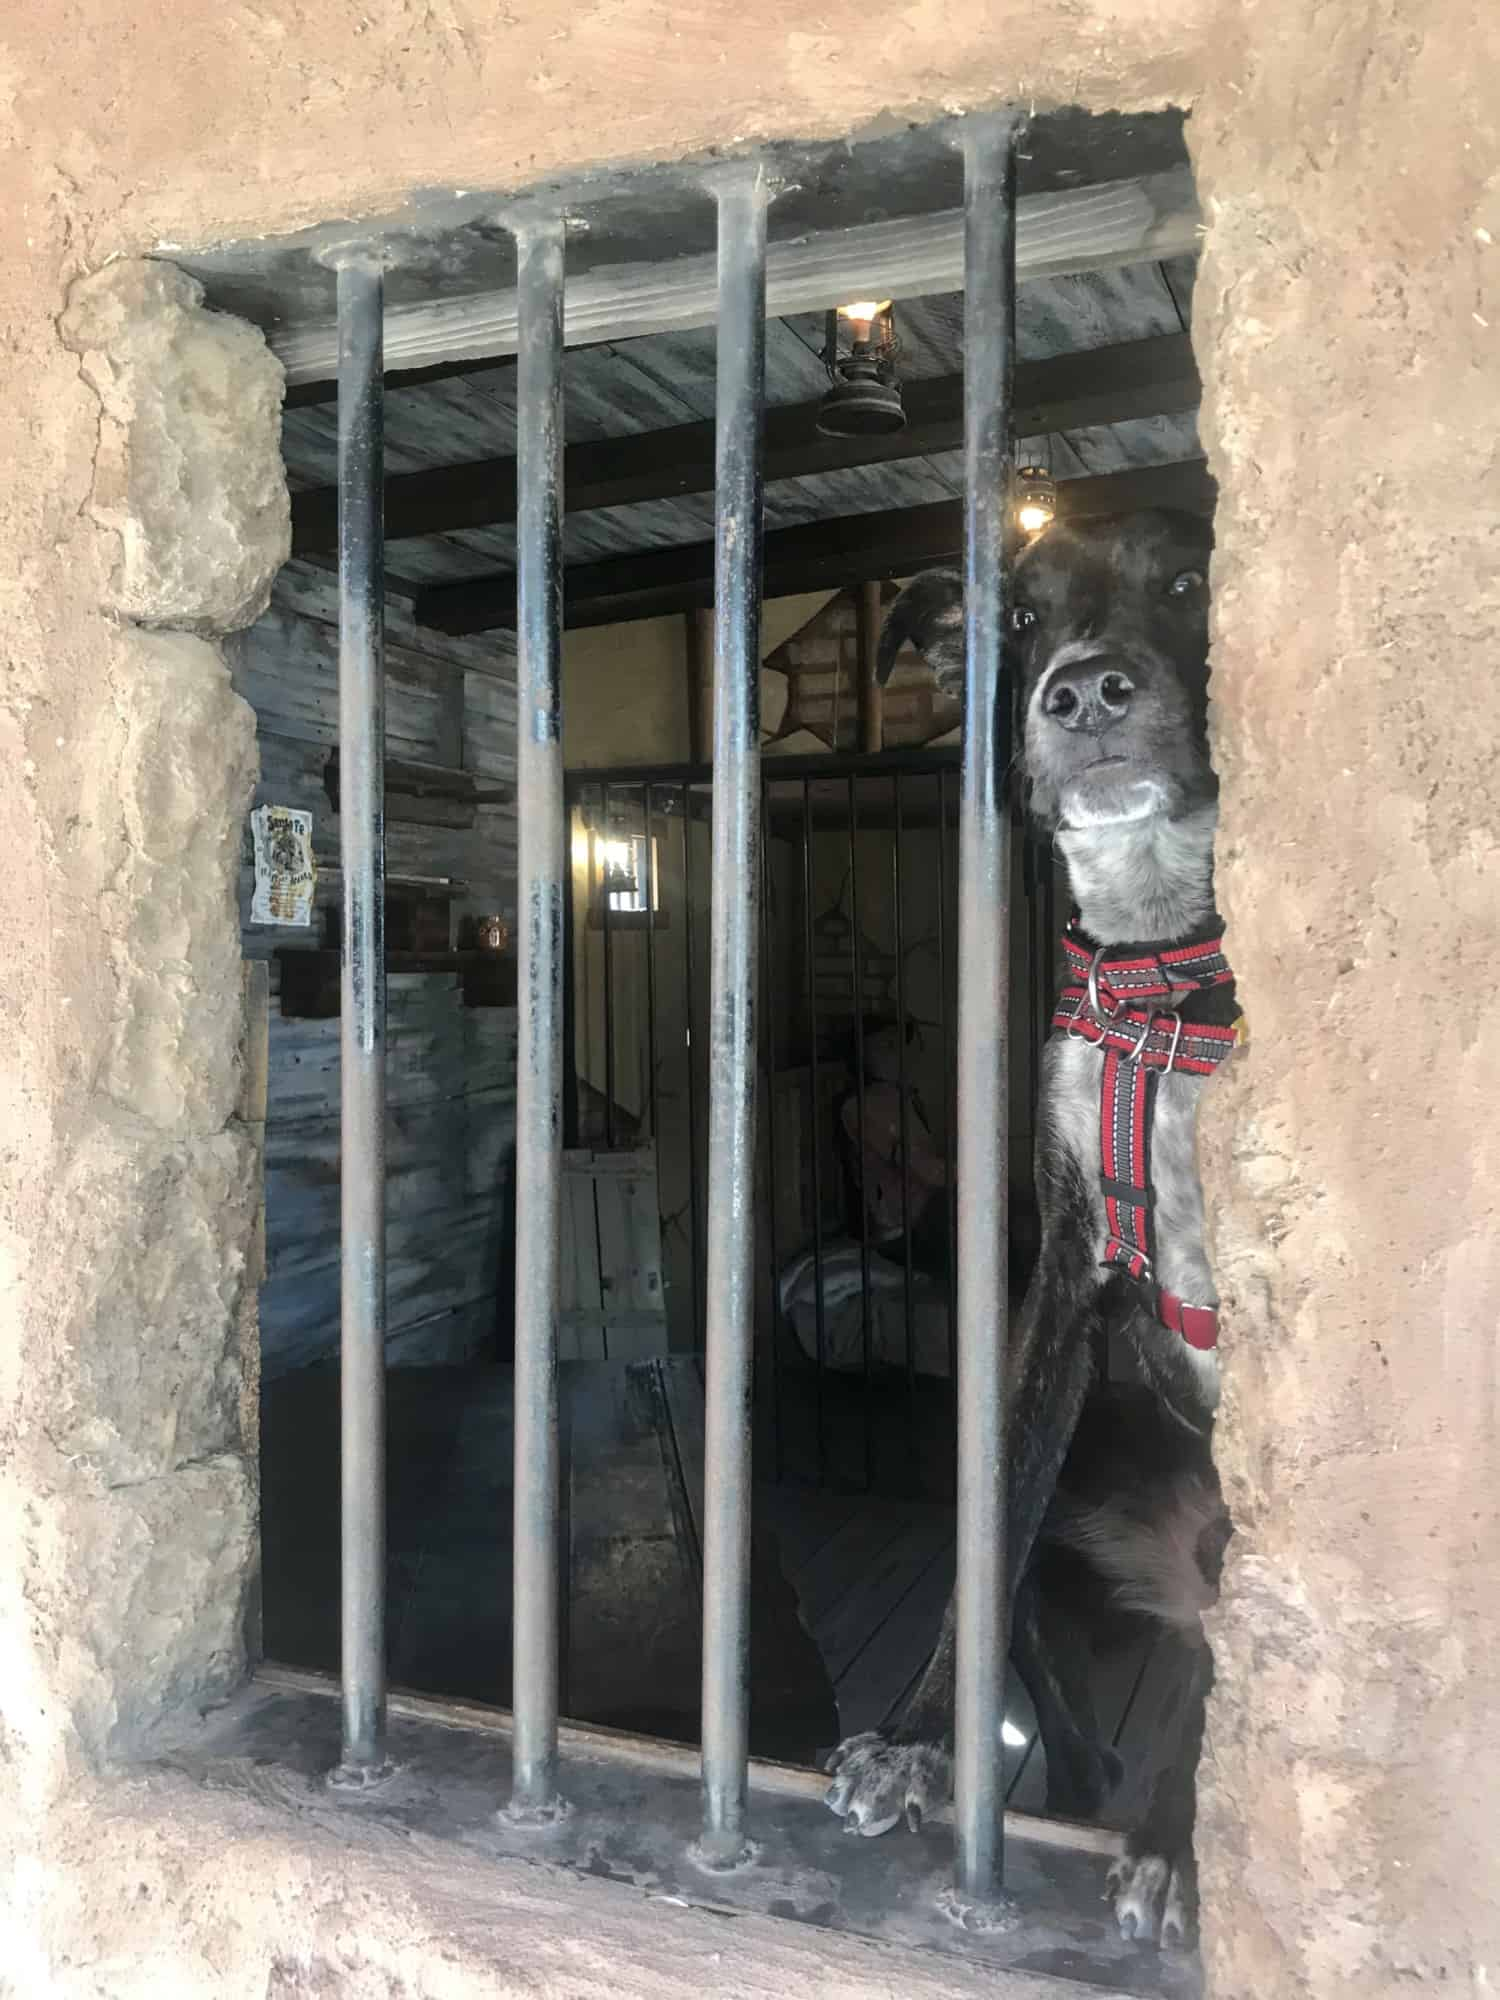 Brindle dog looking through the bars of a jail-like window in Tombstone, AZ